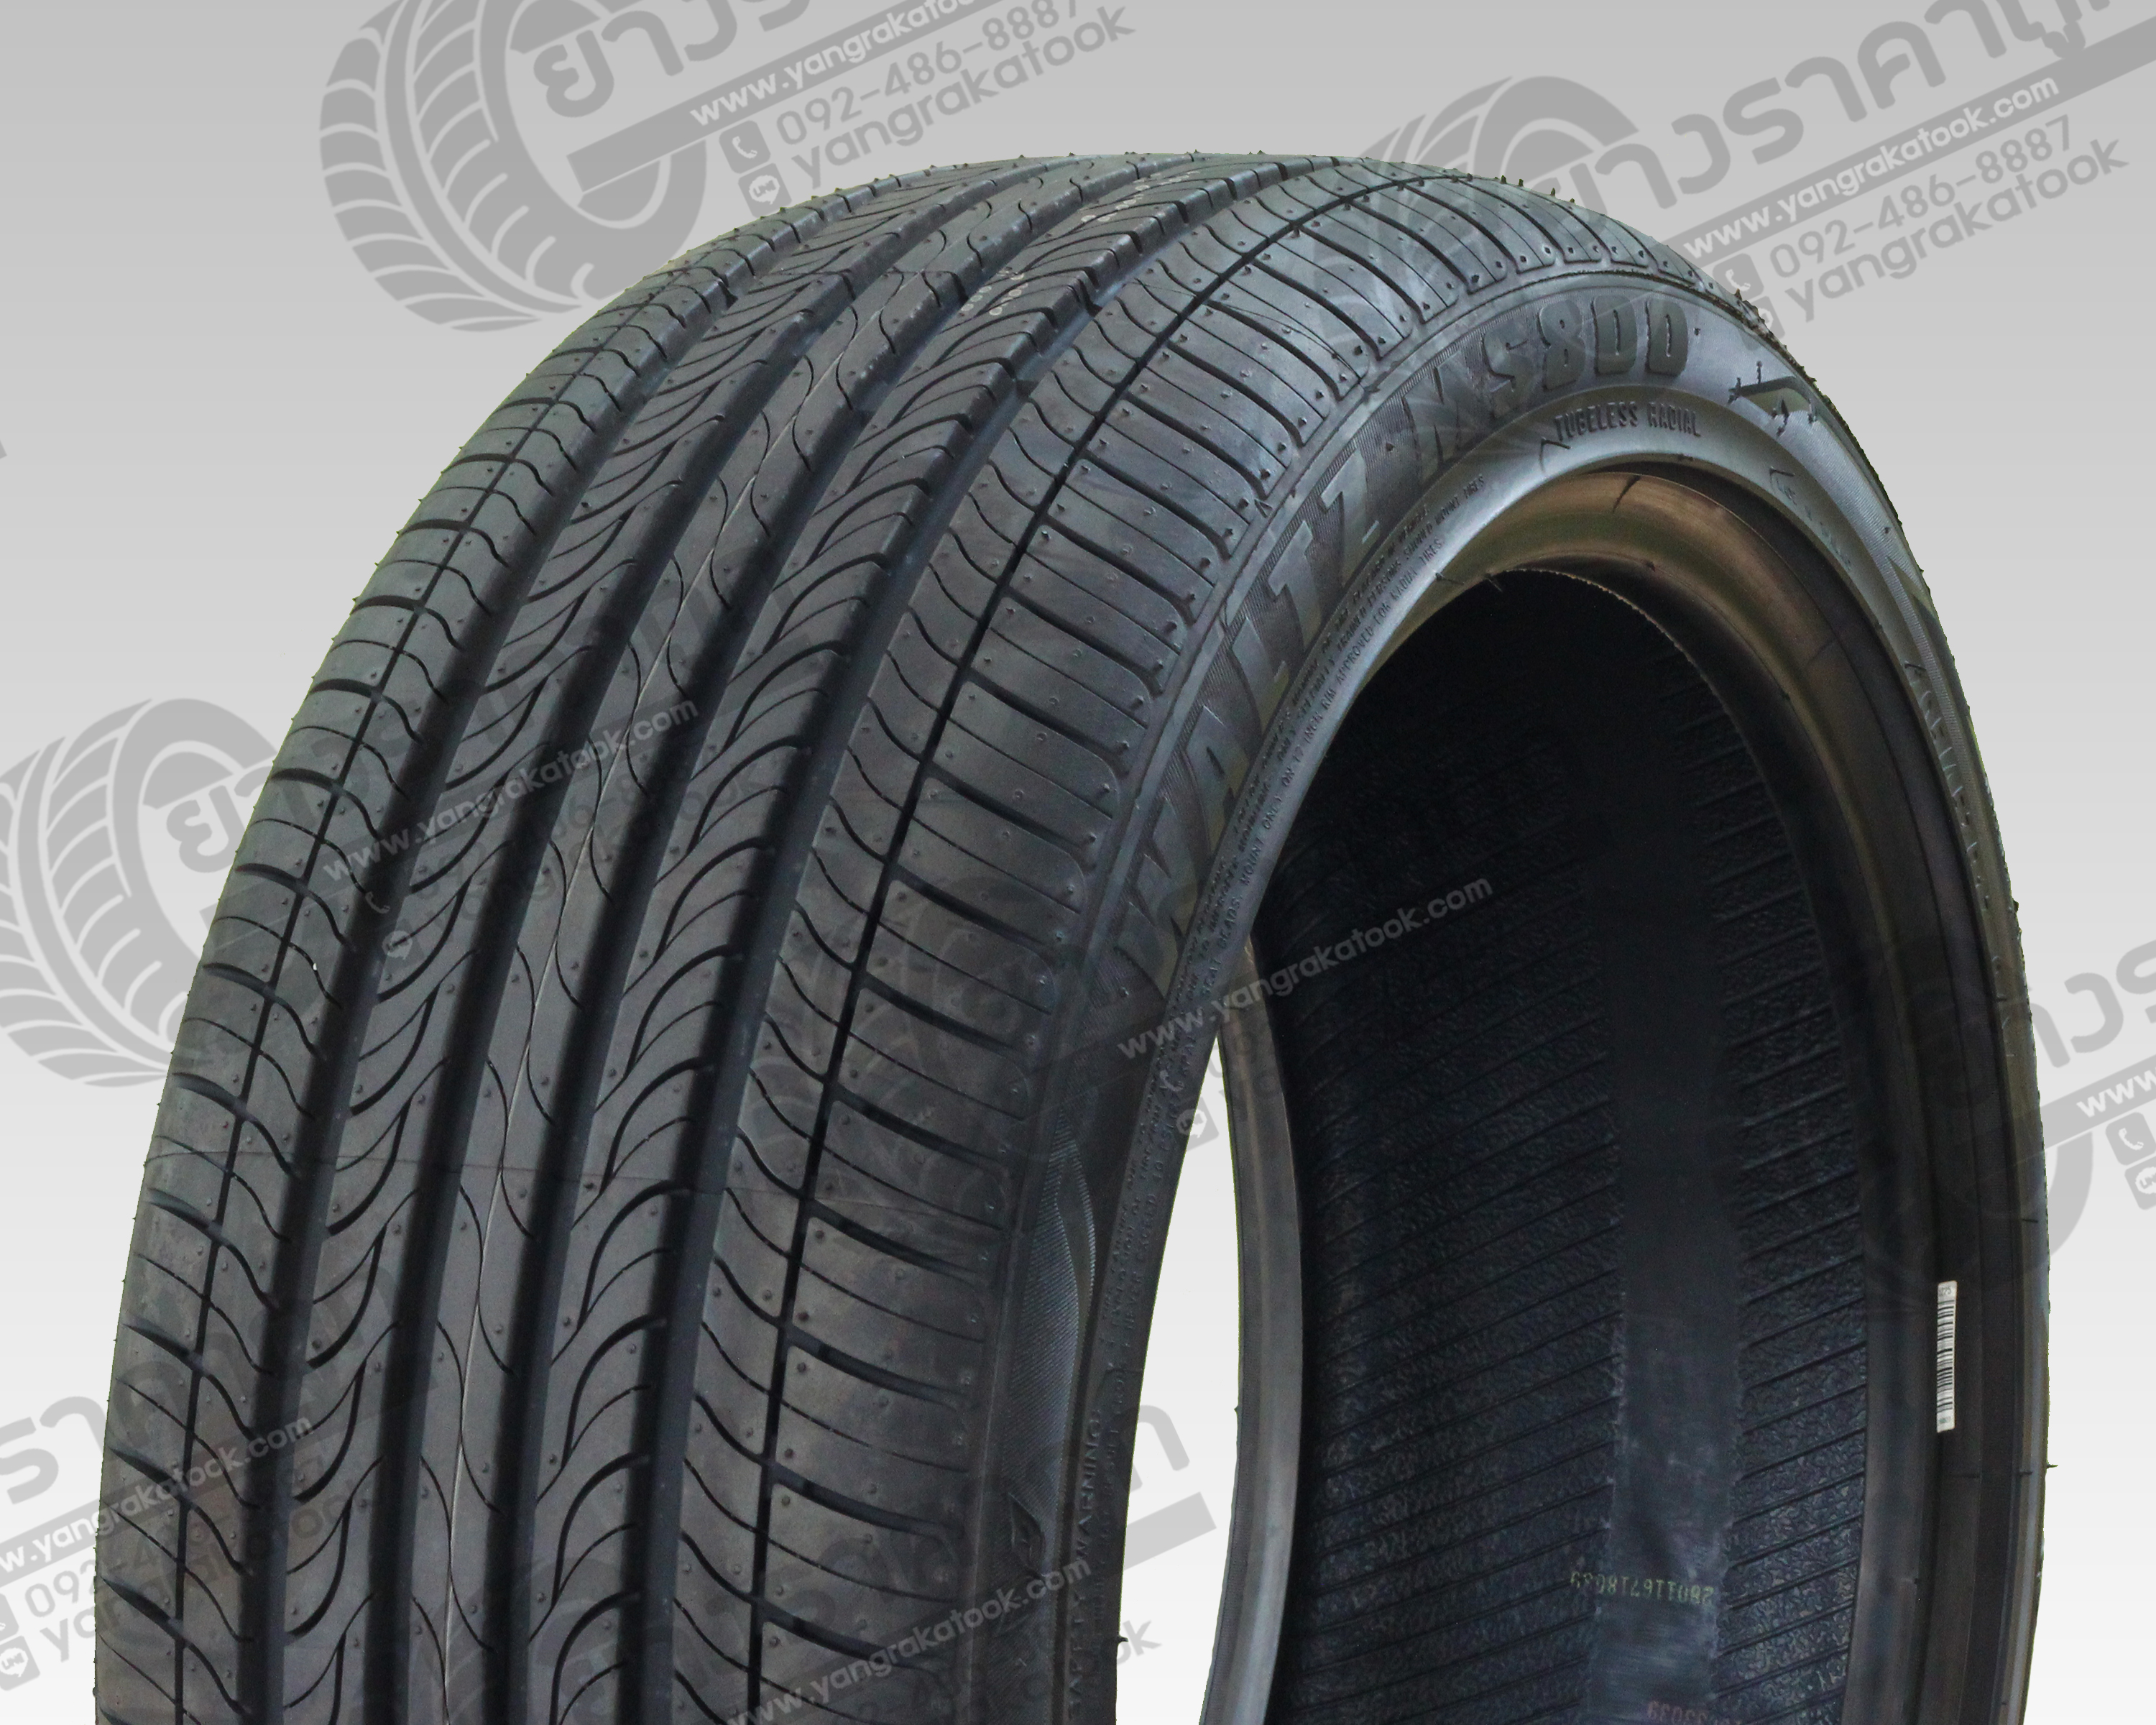 Maxxis MS800 185/60R15 ปี16